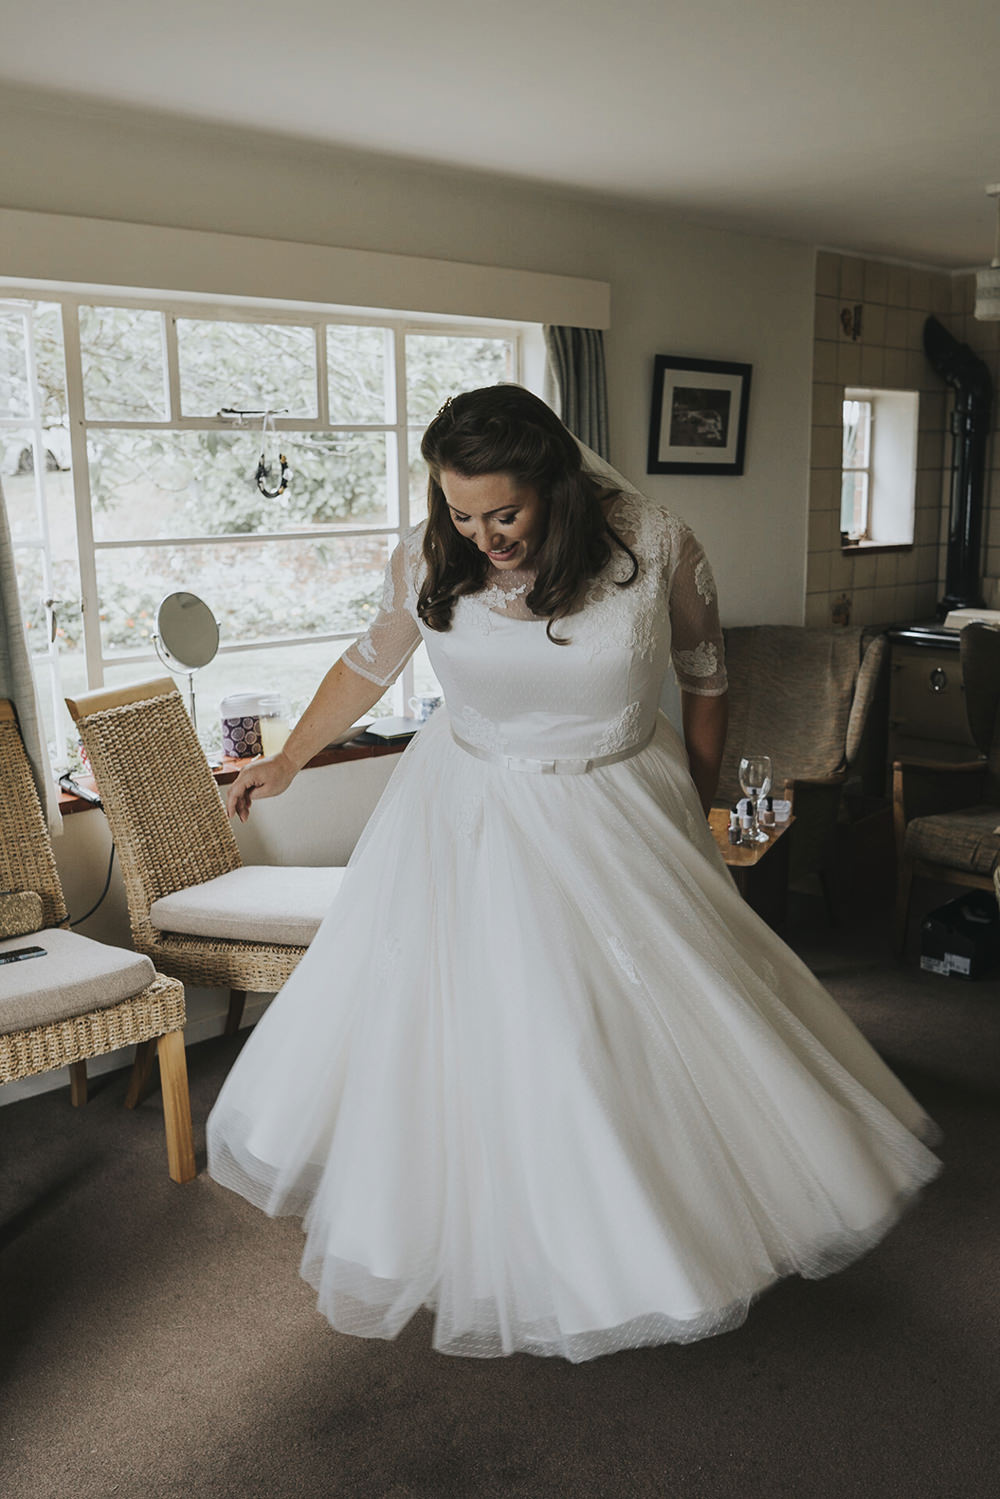 Bride Bridal Dress Gown Overlay Belt See Through Sleeves Lace Celestial Cow Shed Wedding Tora Baker Photography